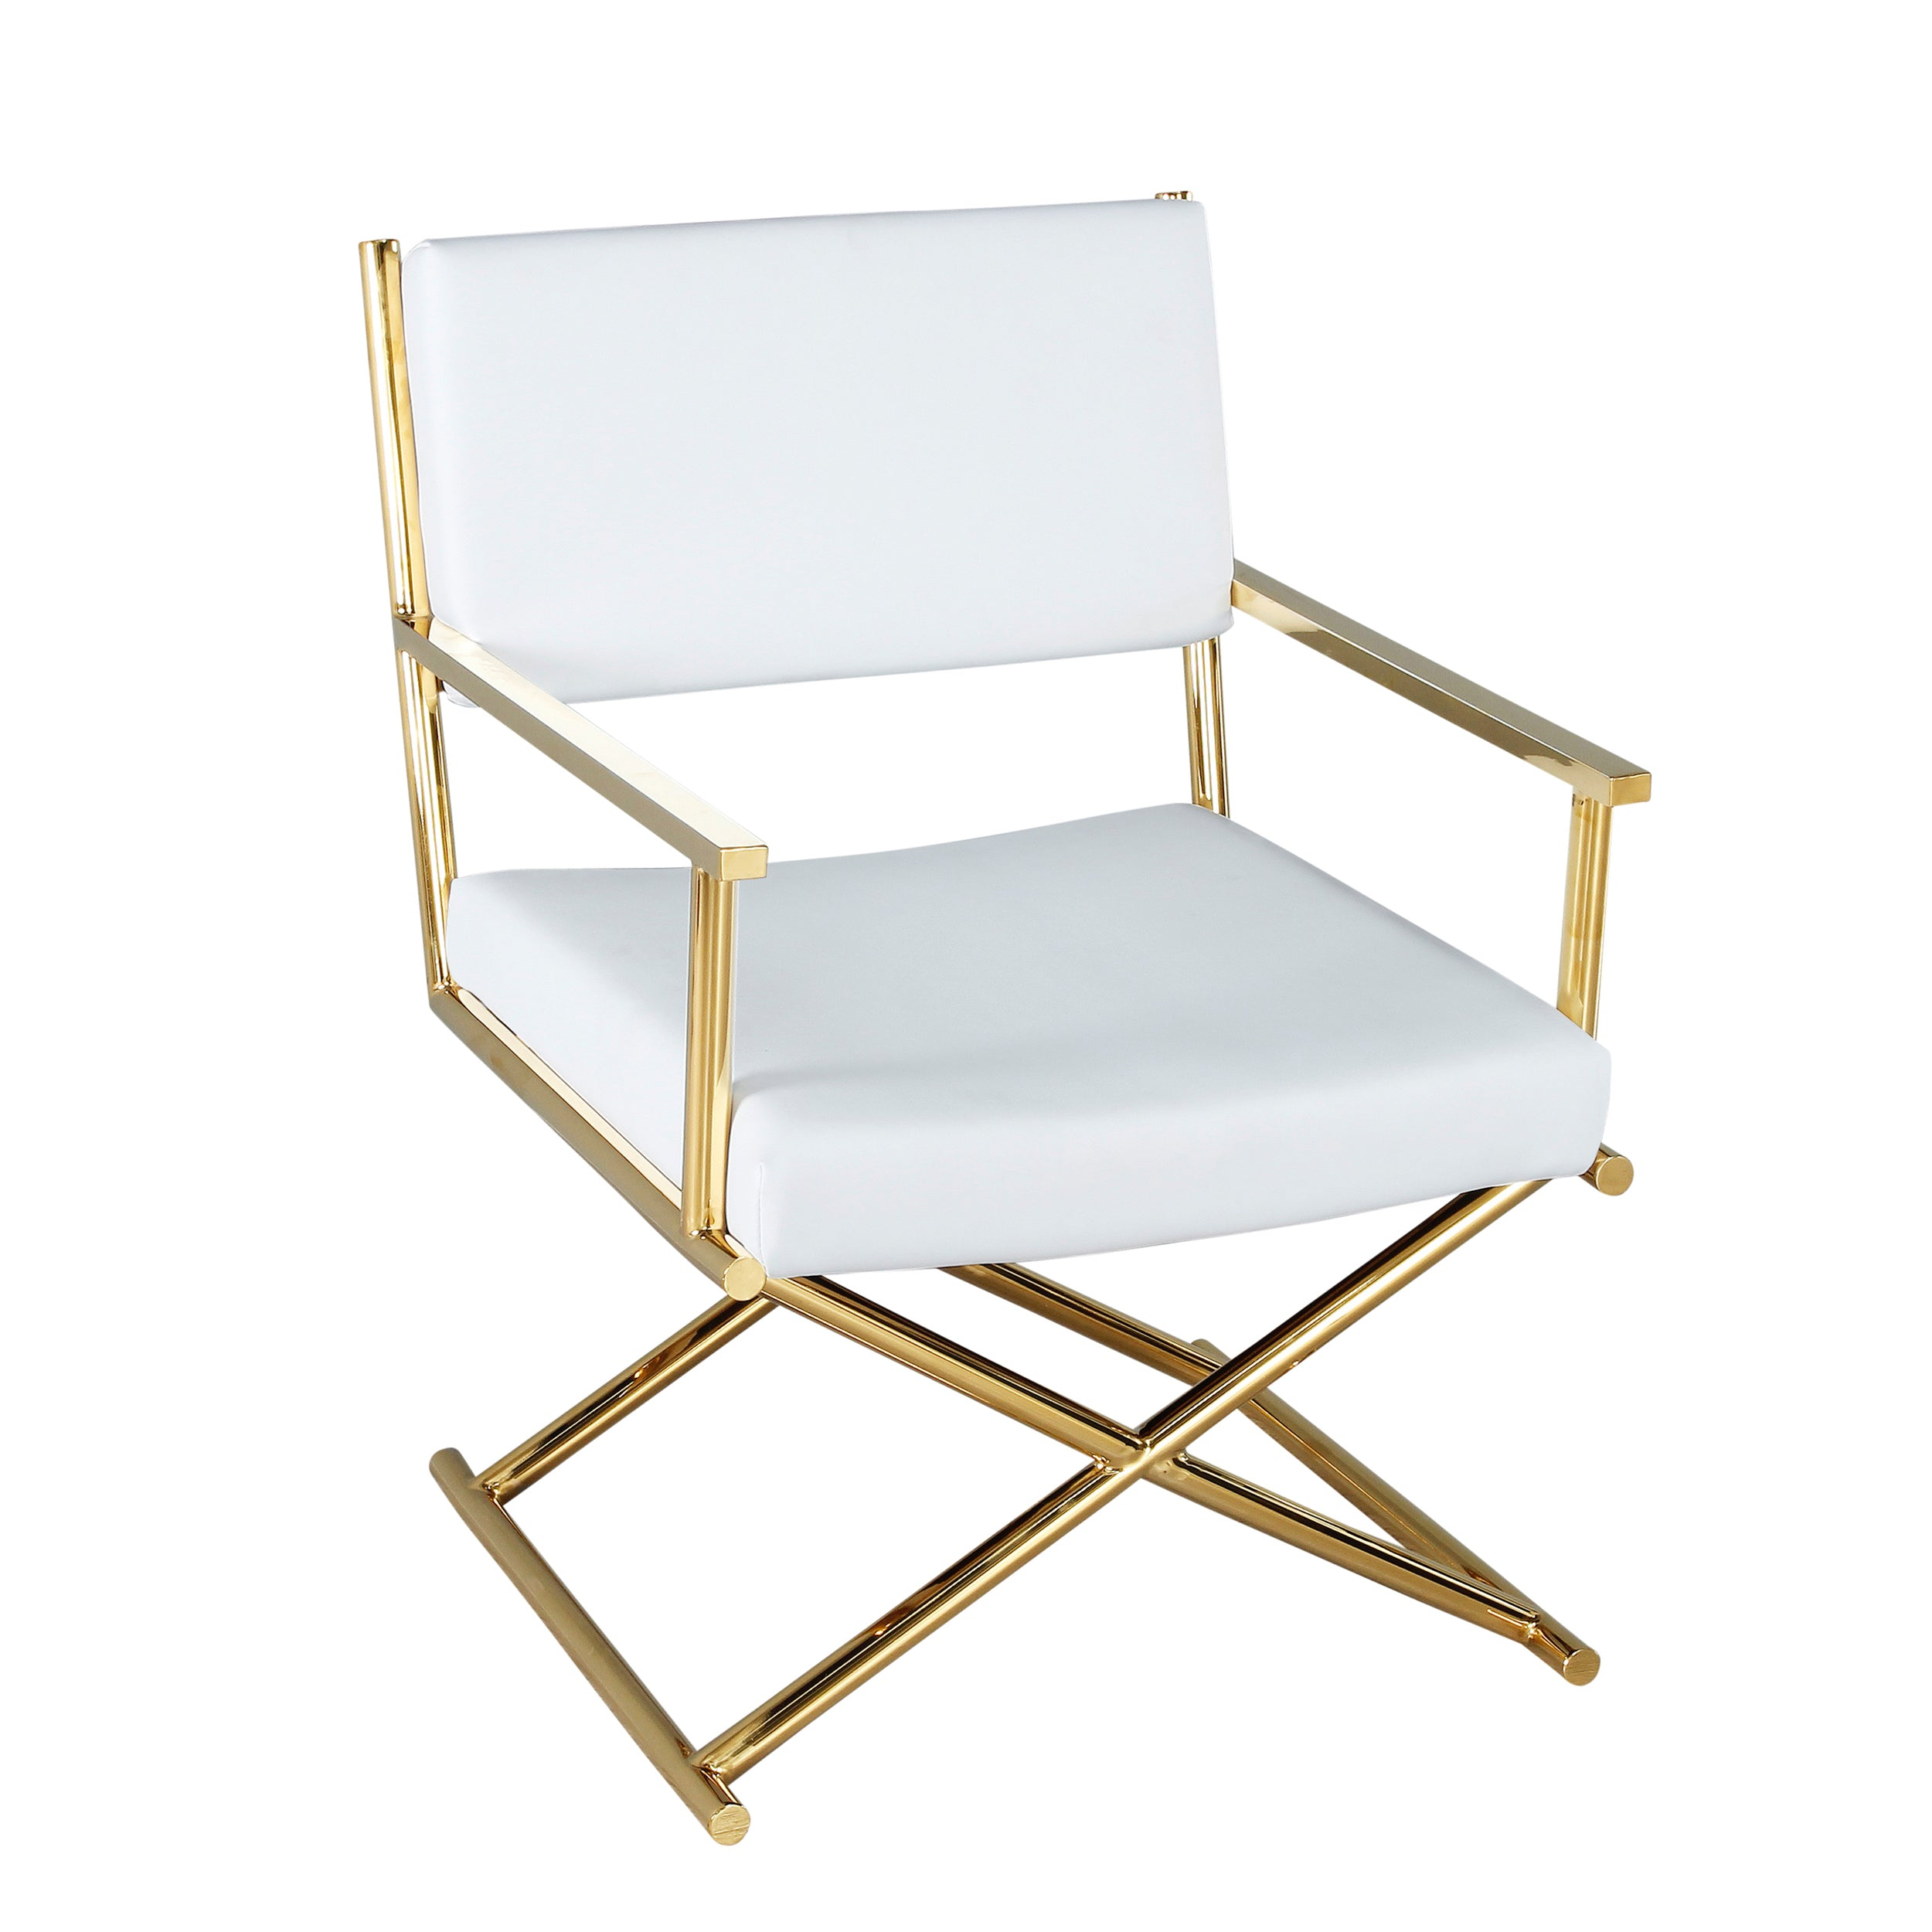 METAL DIRECTOR'S CHAIR IN PU,WHITE/GOLD